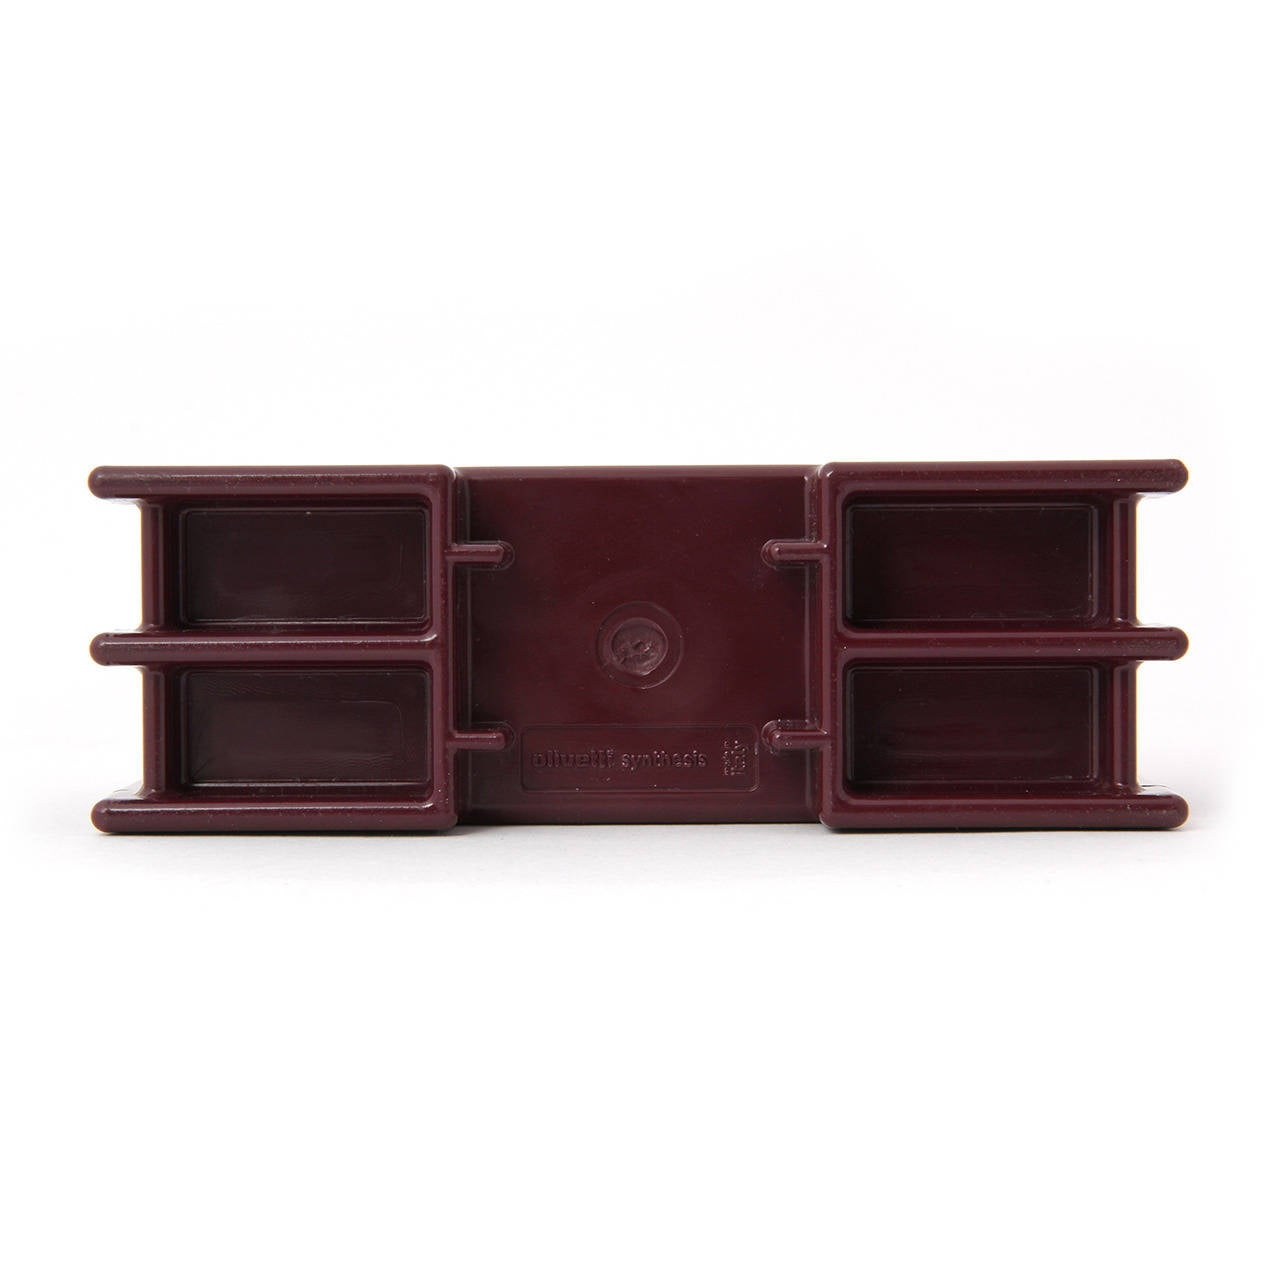 Desk organizers by ettore sottsass at 1stdibs - Decorative desk organizers ...